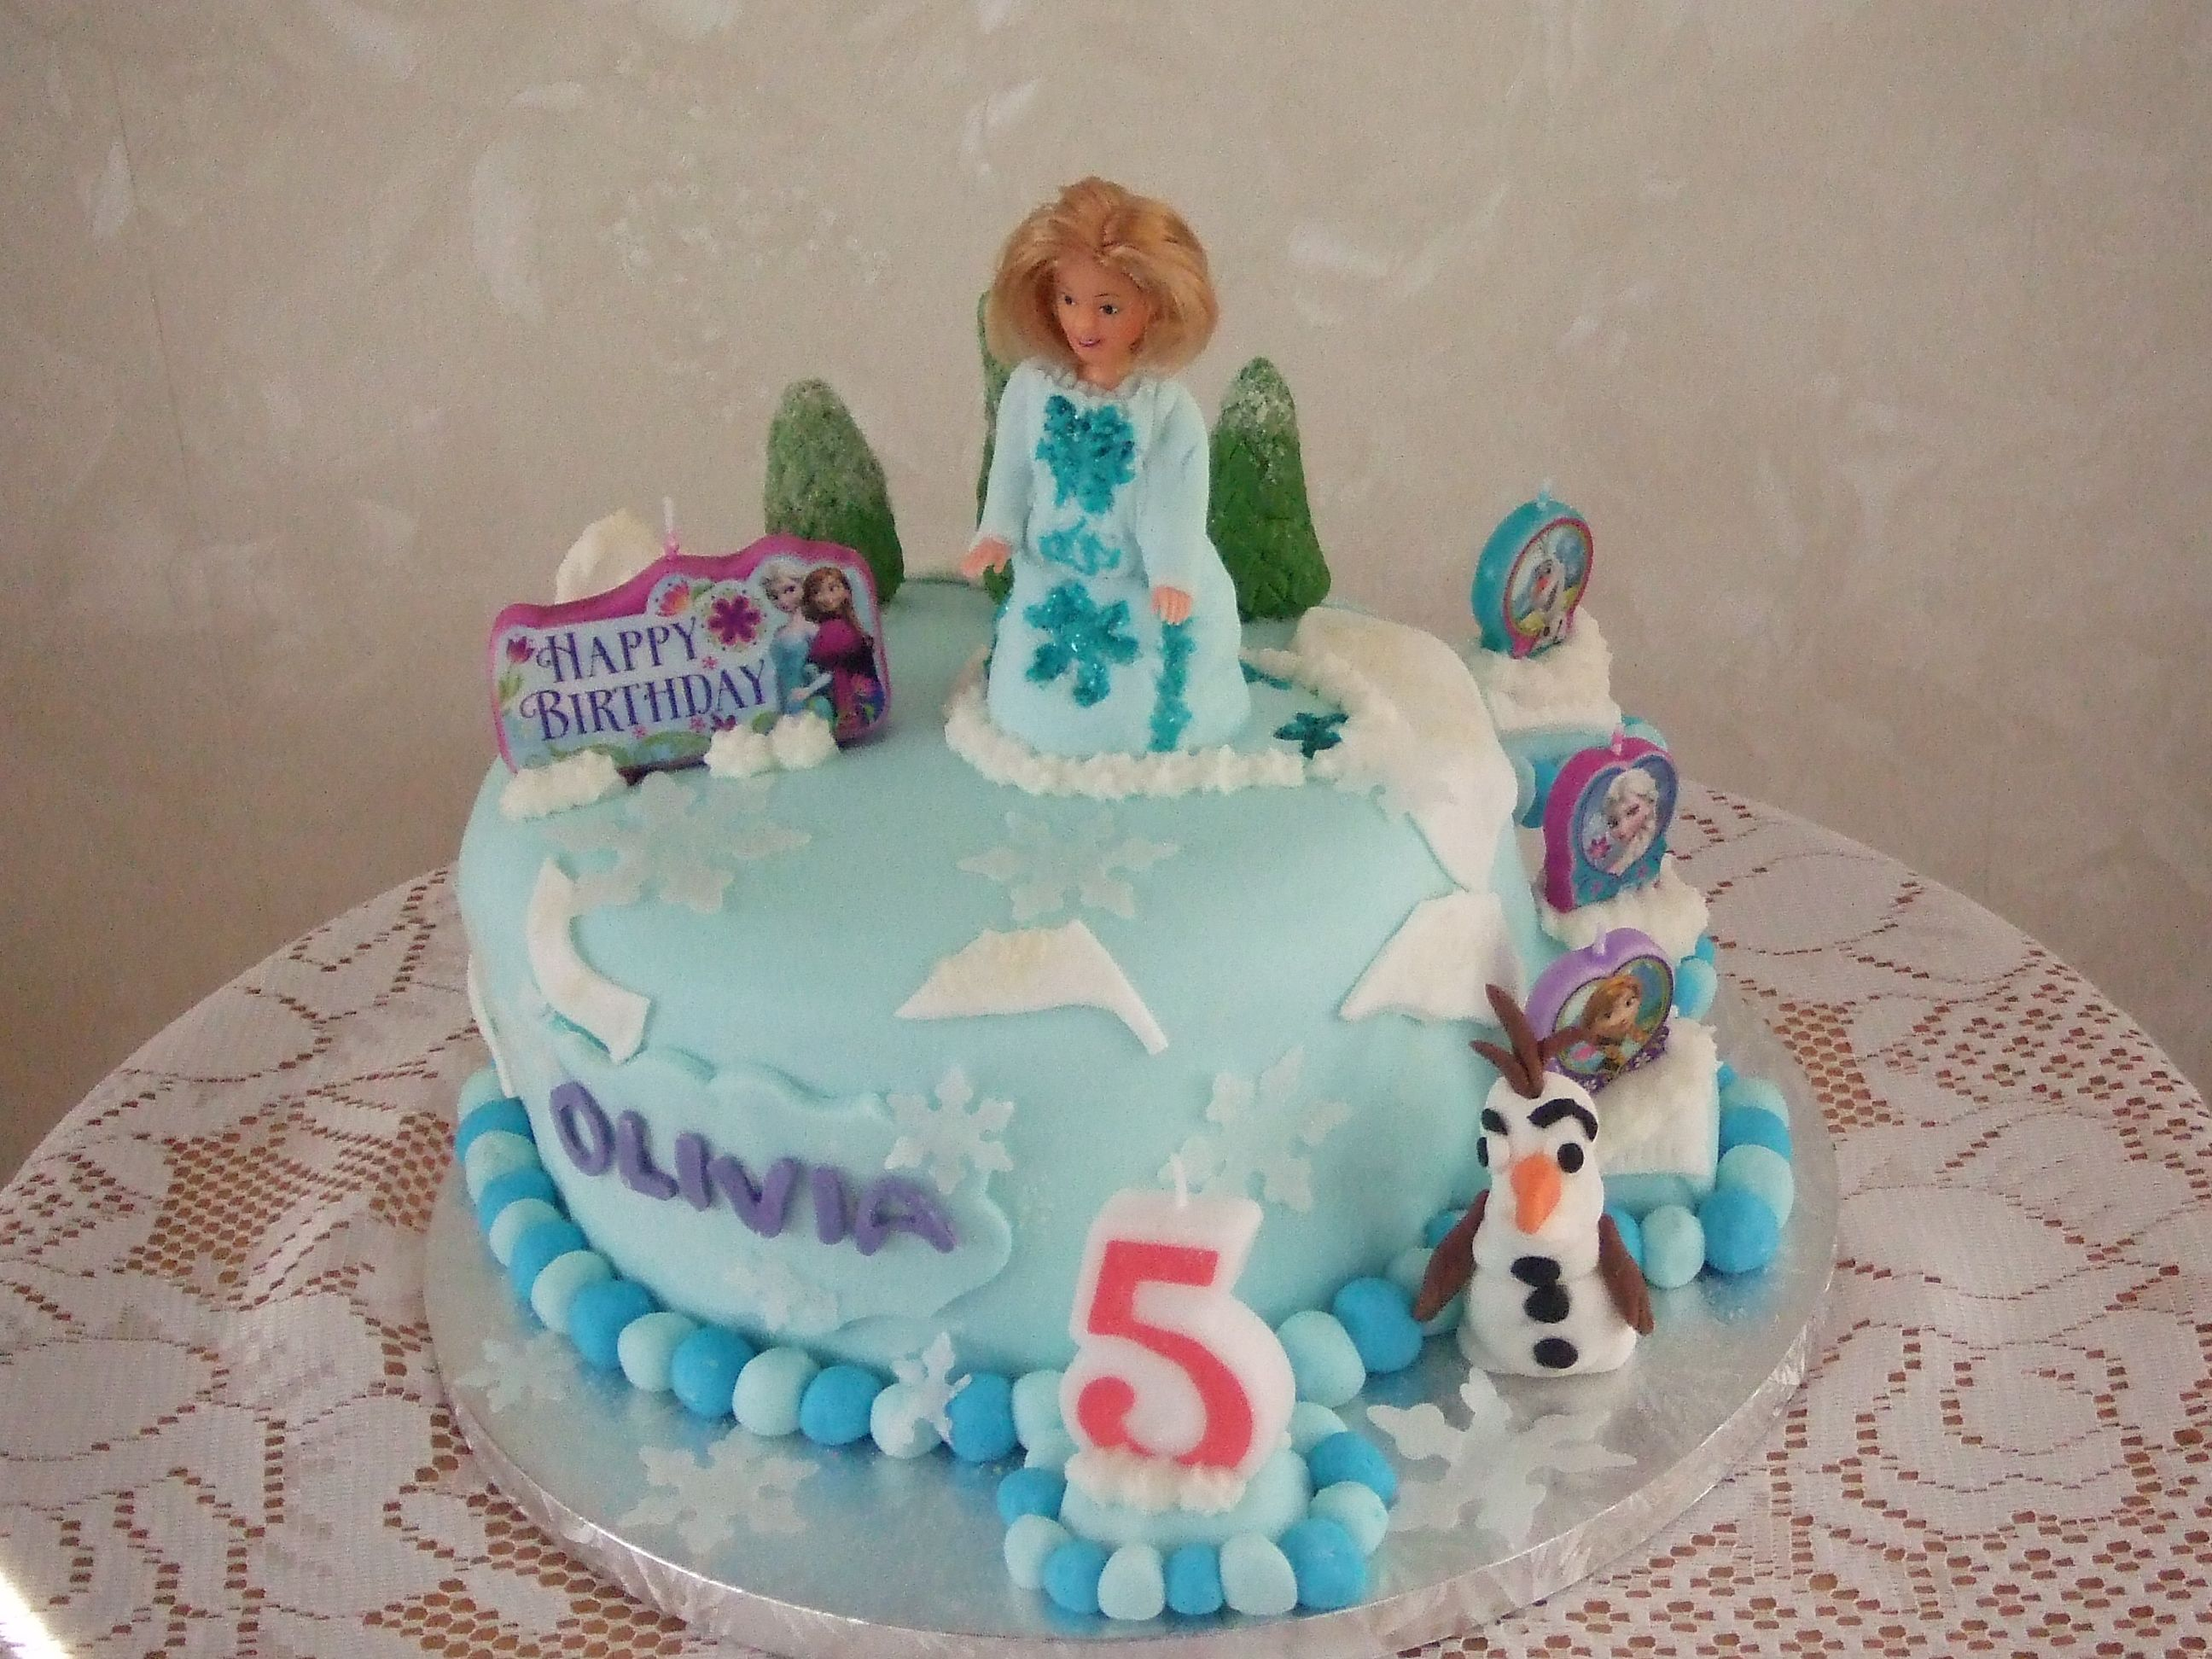 This frozen cake for Olivia's 5th birthday  with handmade  Elsa   and trees steps etc  and with the frozen candles.